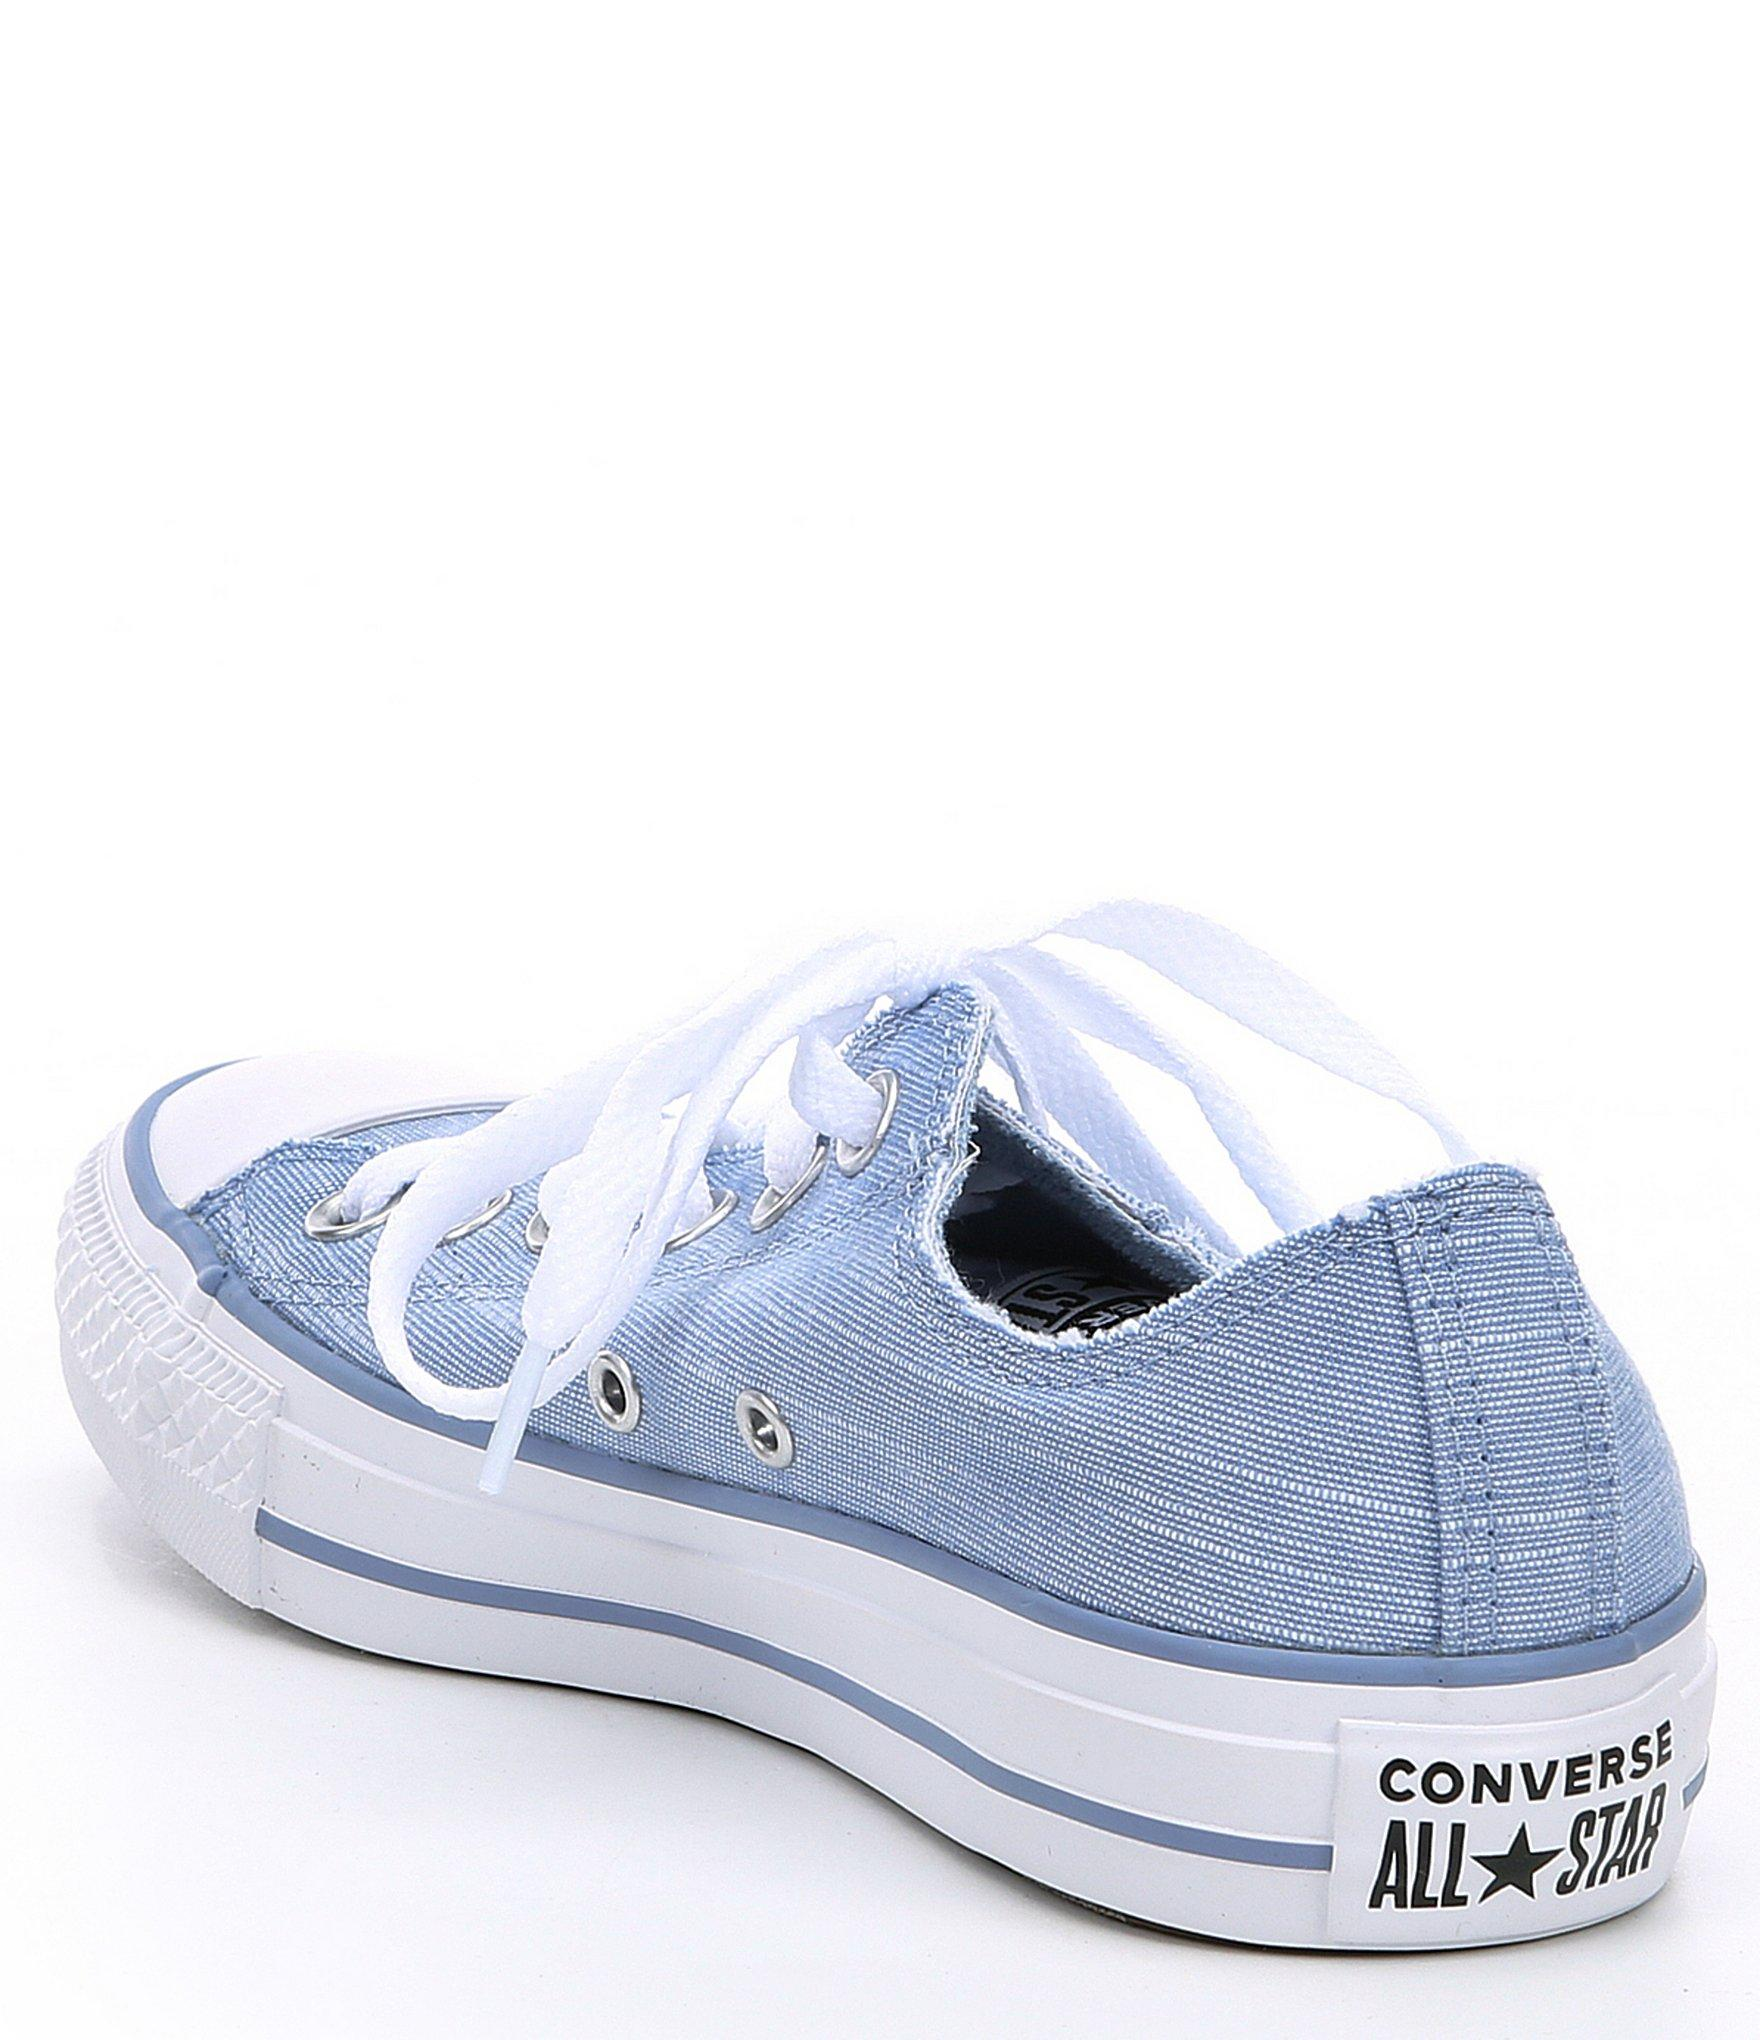 Women's Blue Chuck Taylor All Star Frayed Lines Low top Sneakers